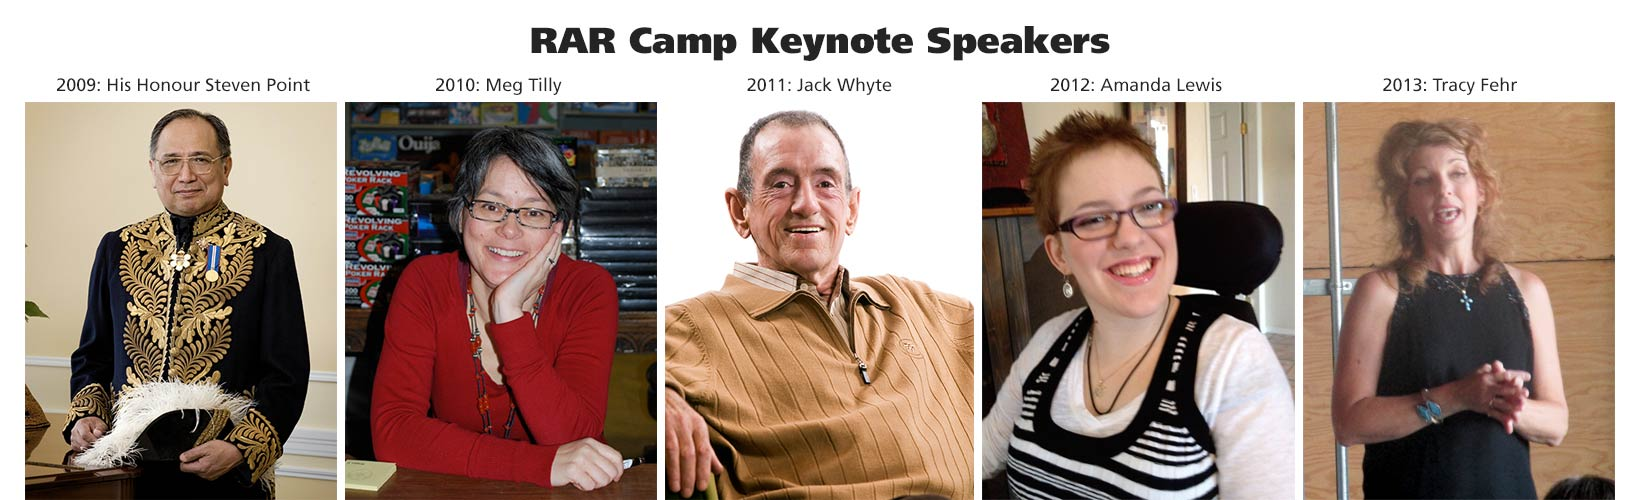 RAR Camp Keynote Speakers